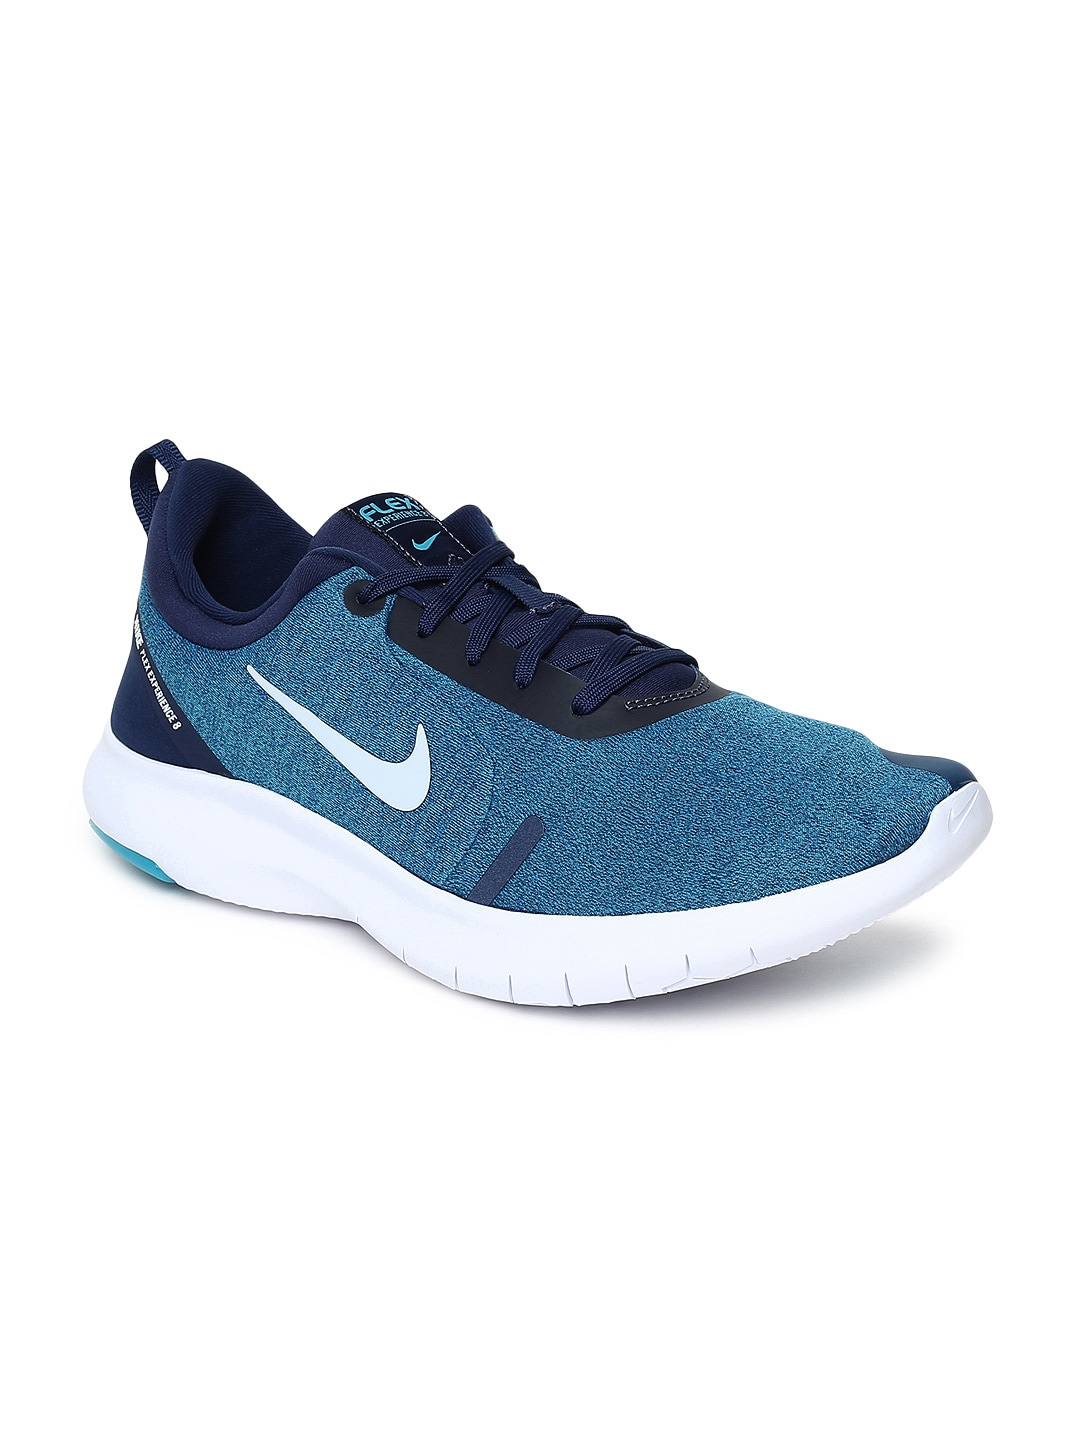 3755de581a1 Nike Running Shoes - Buy Nike Running Shoes Online